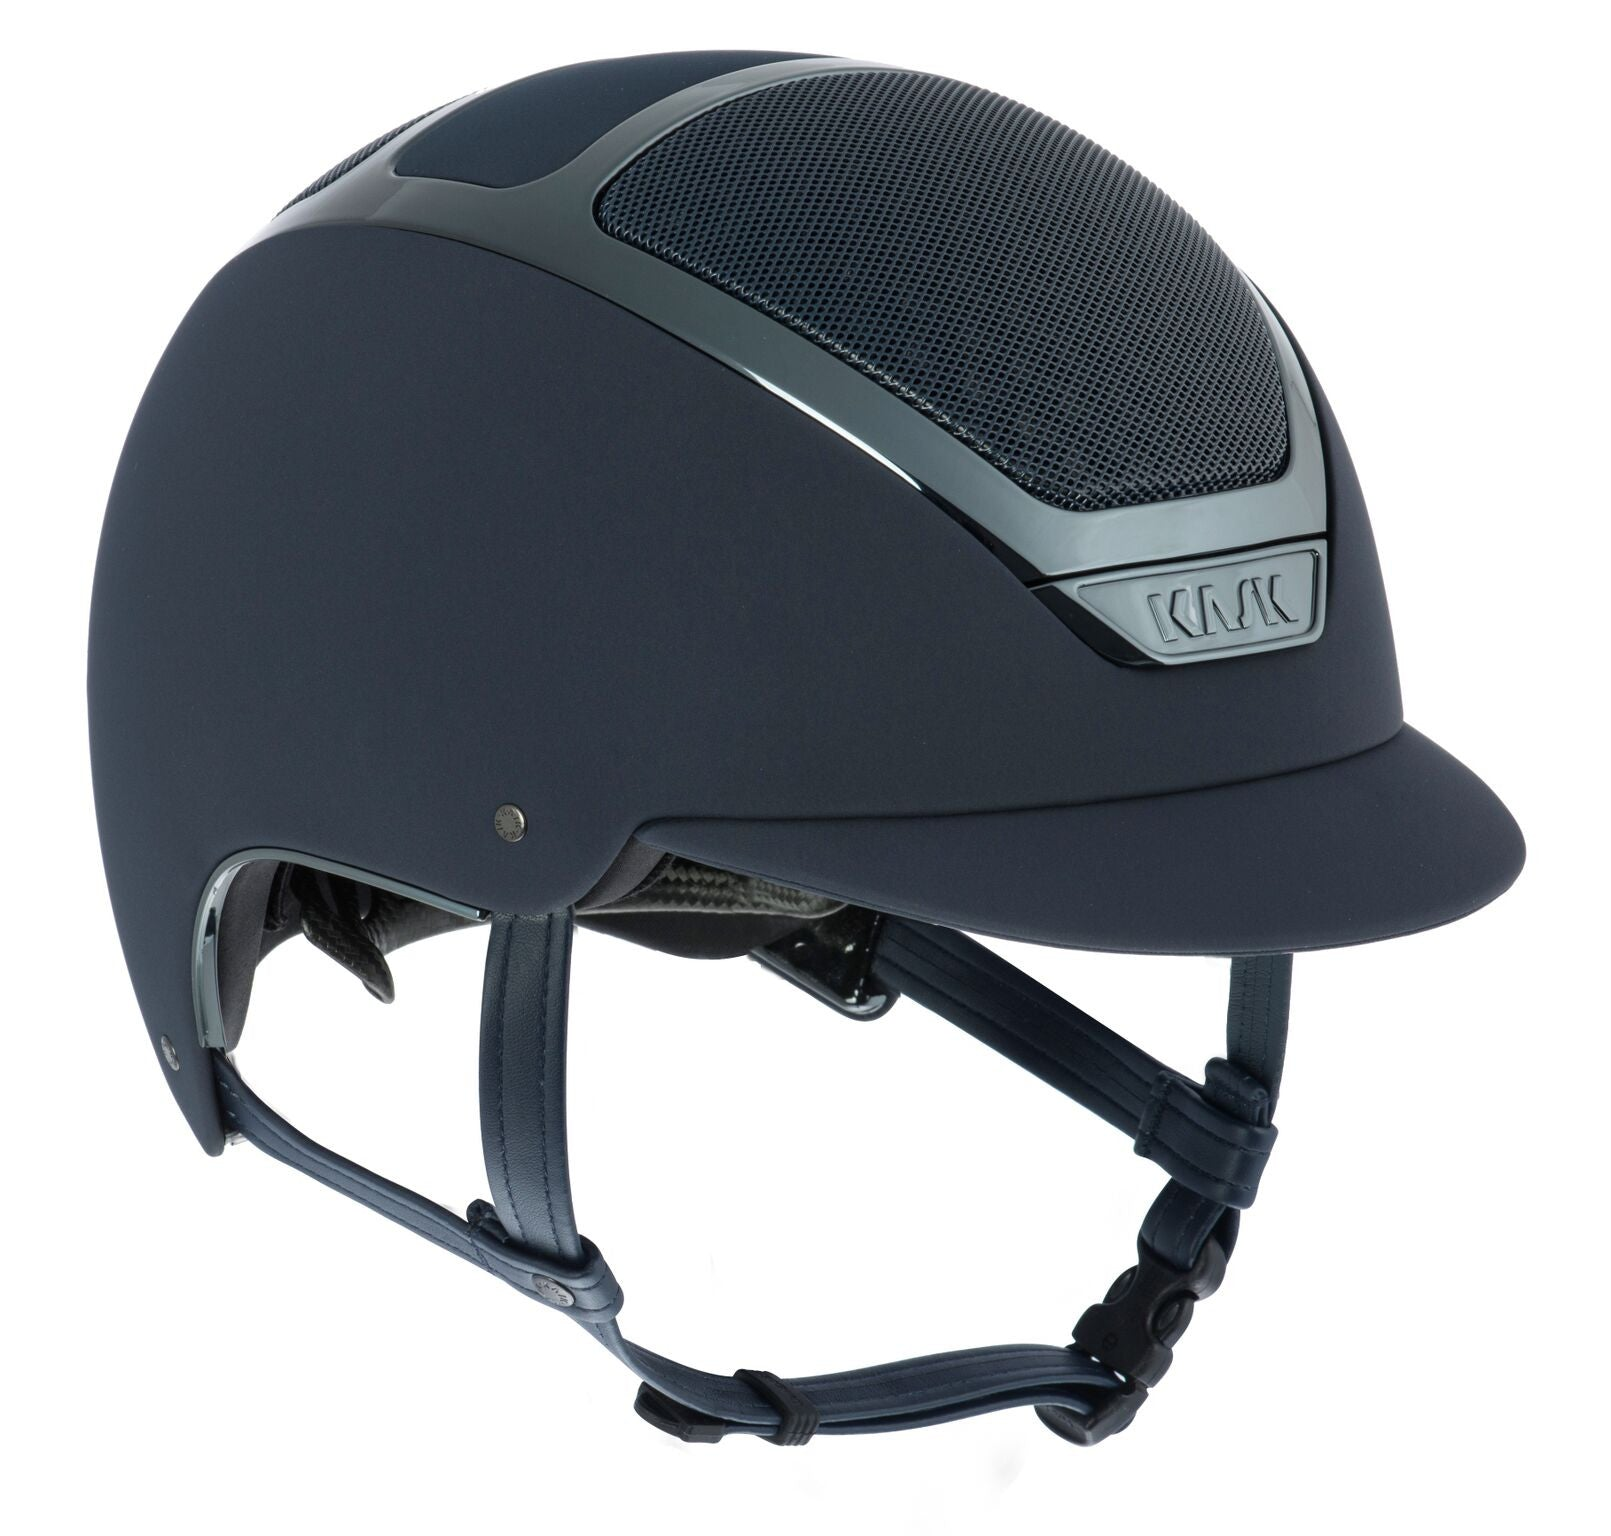 KASK DOGMA CHROME LIGHT - NAVY / NAVY